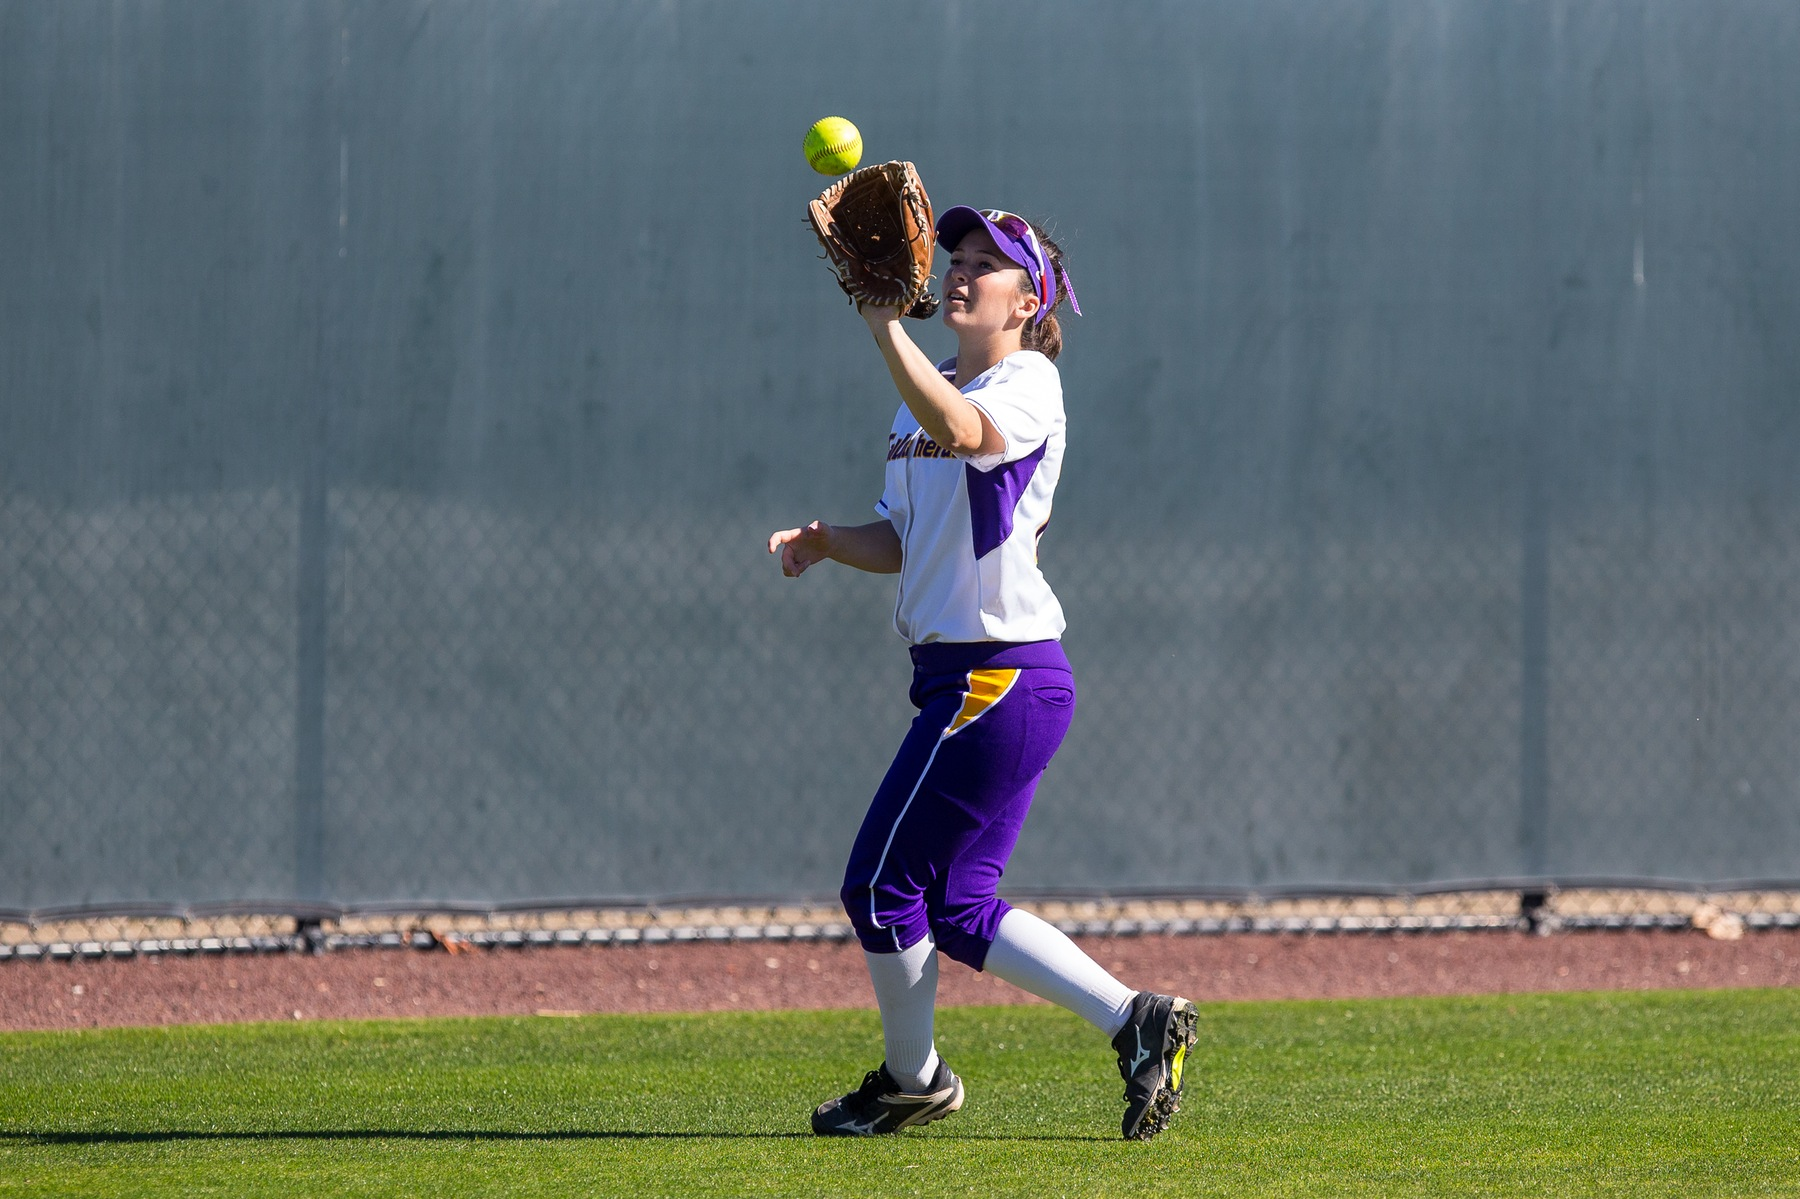 Cat Slabaugh catches a fly ball. (Credit: Dave Donovan)